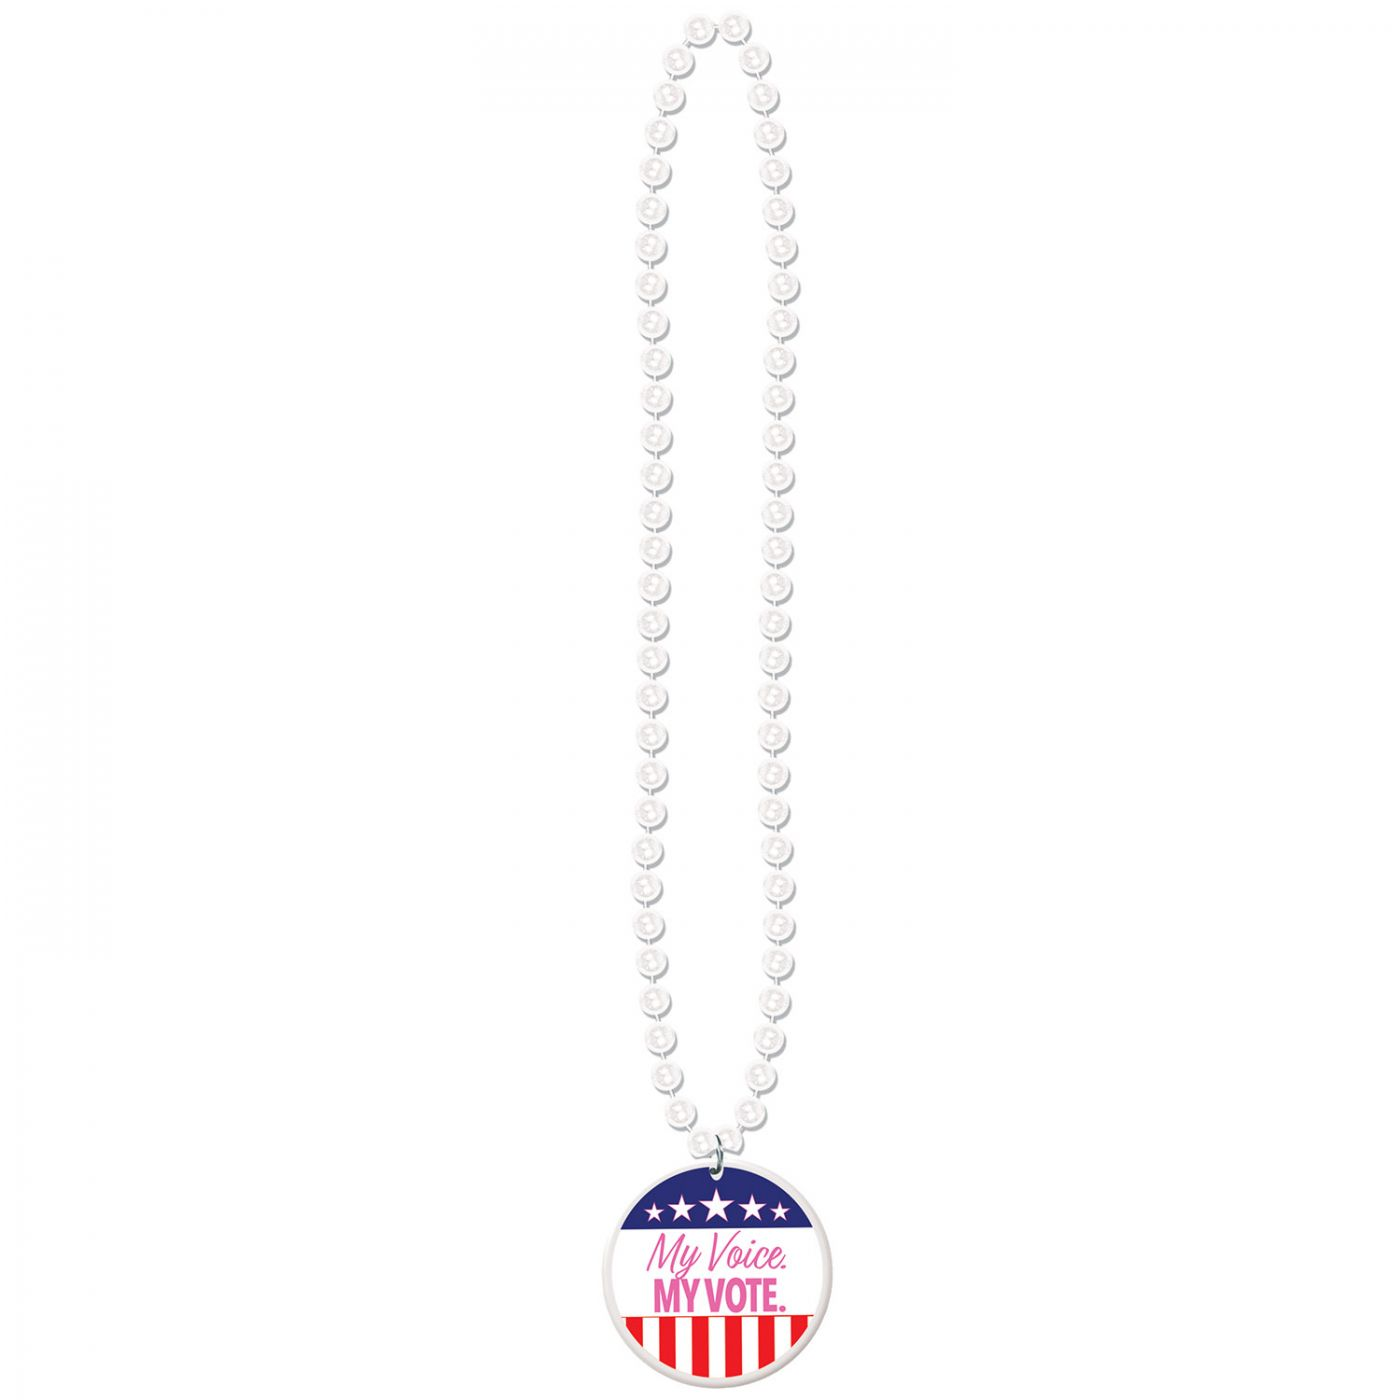 Image of Beads w/My Voice. My Vote. Medallion